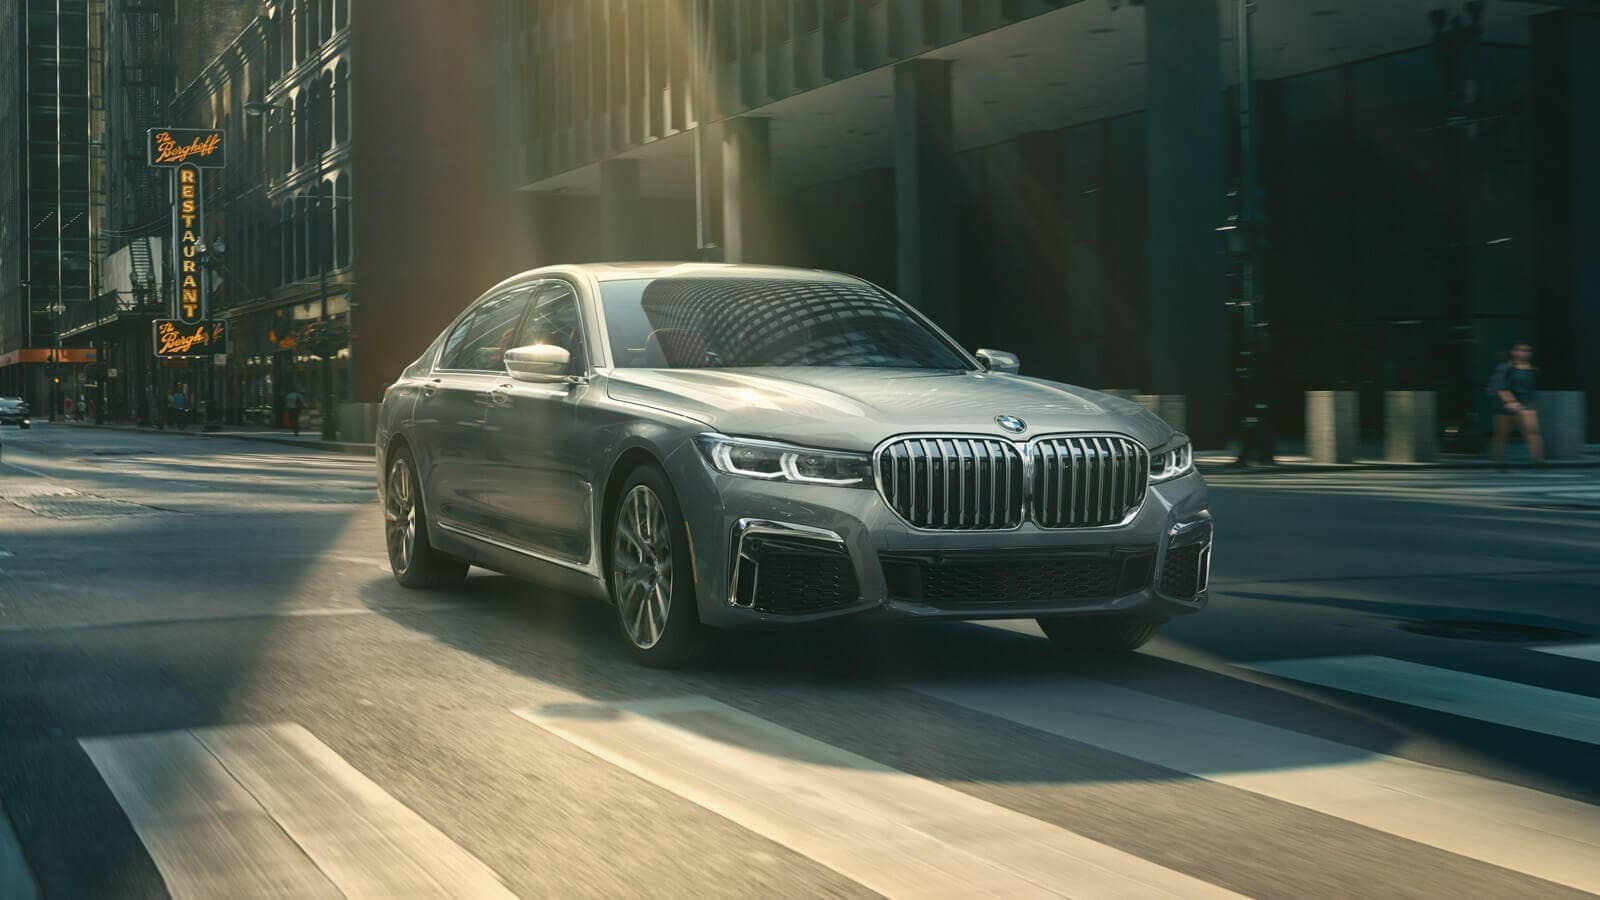 new 2021 bmw 7 series | sewell family of companies